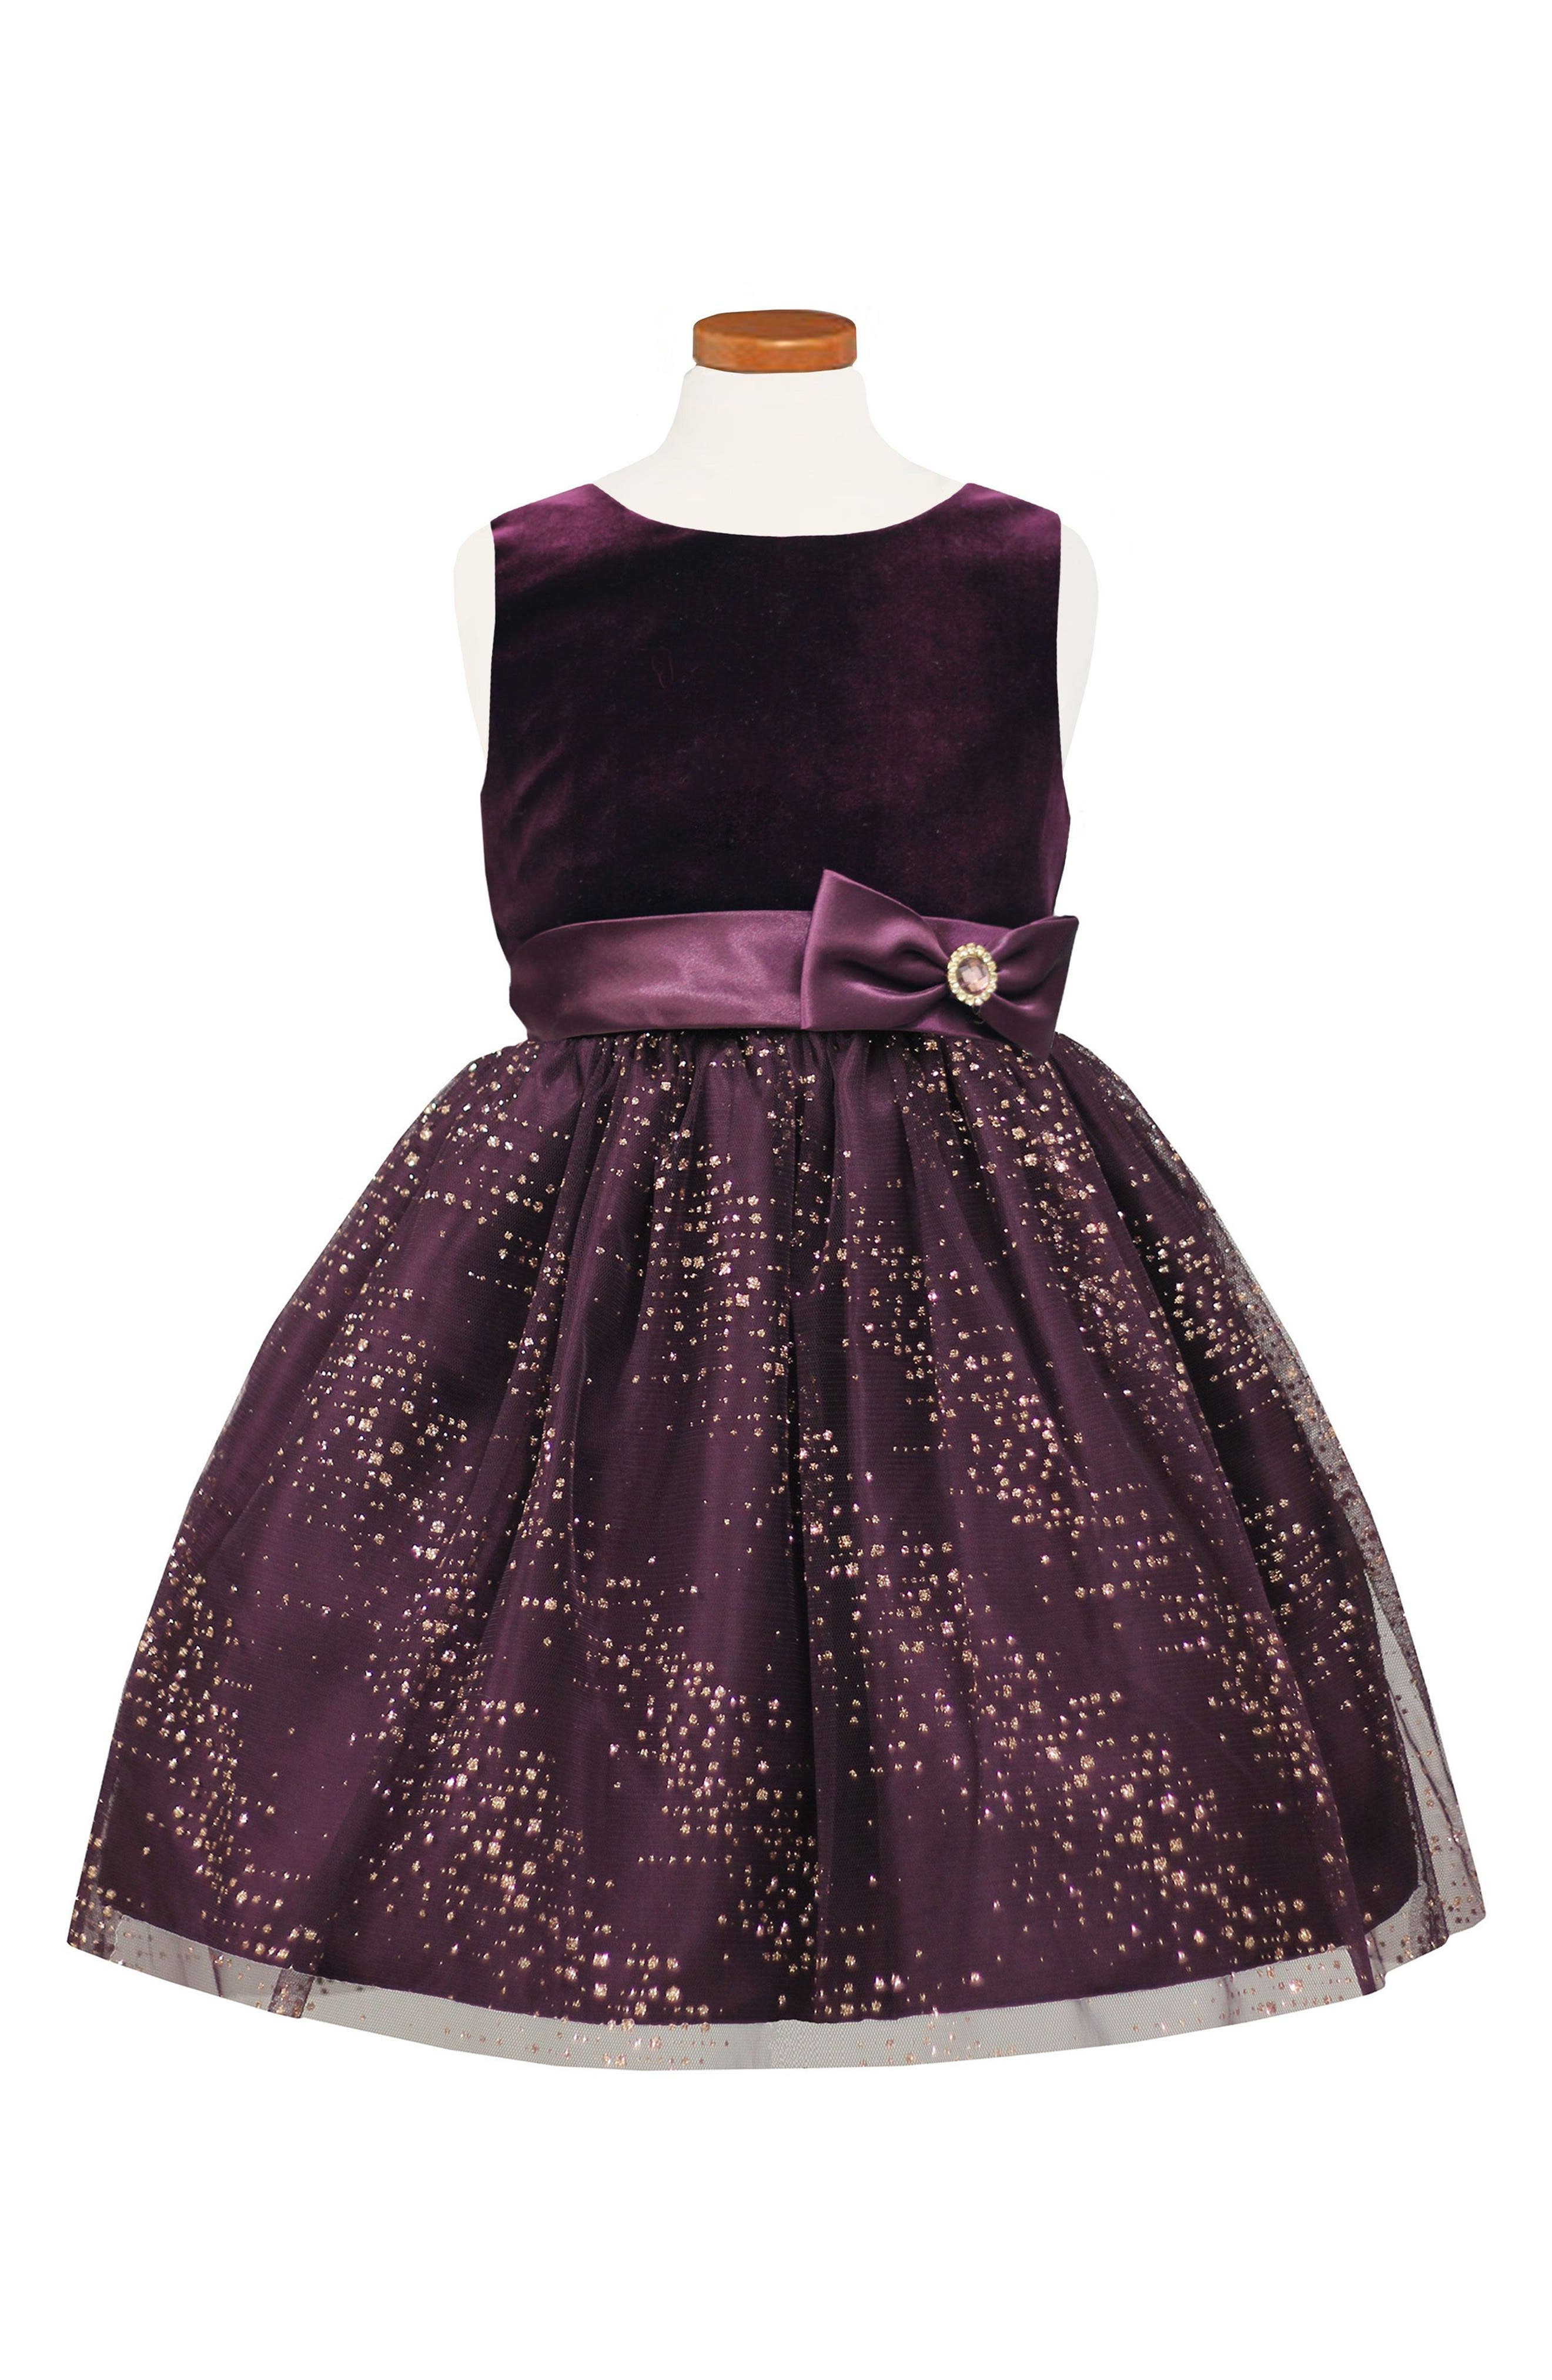 Alternate Image 1 Selected - Sorbet Velvet Bodice Fit & Flare Dress (Big Girls)